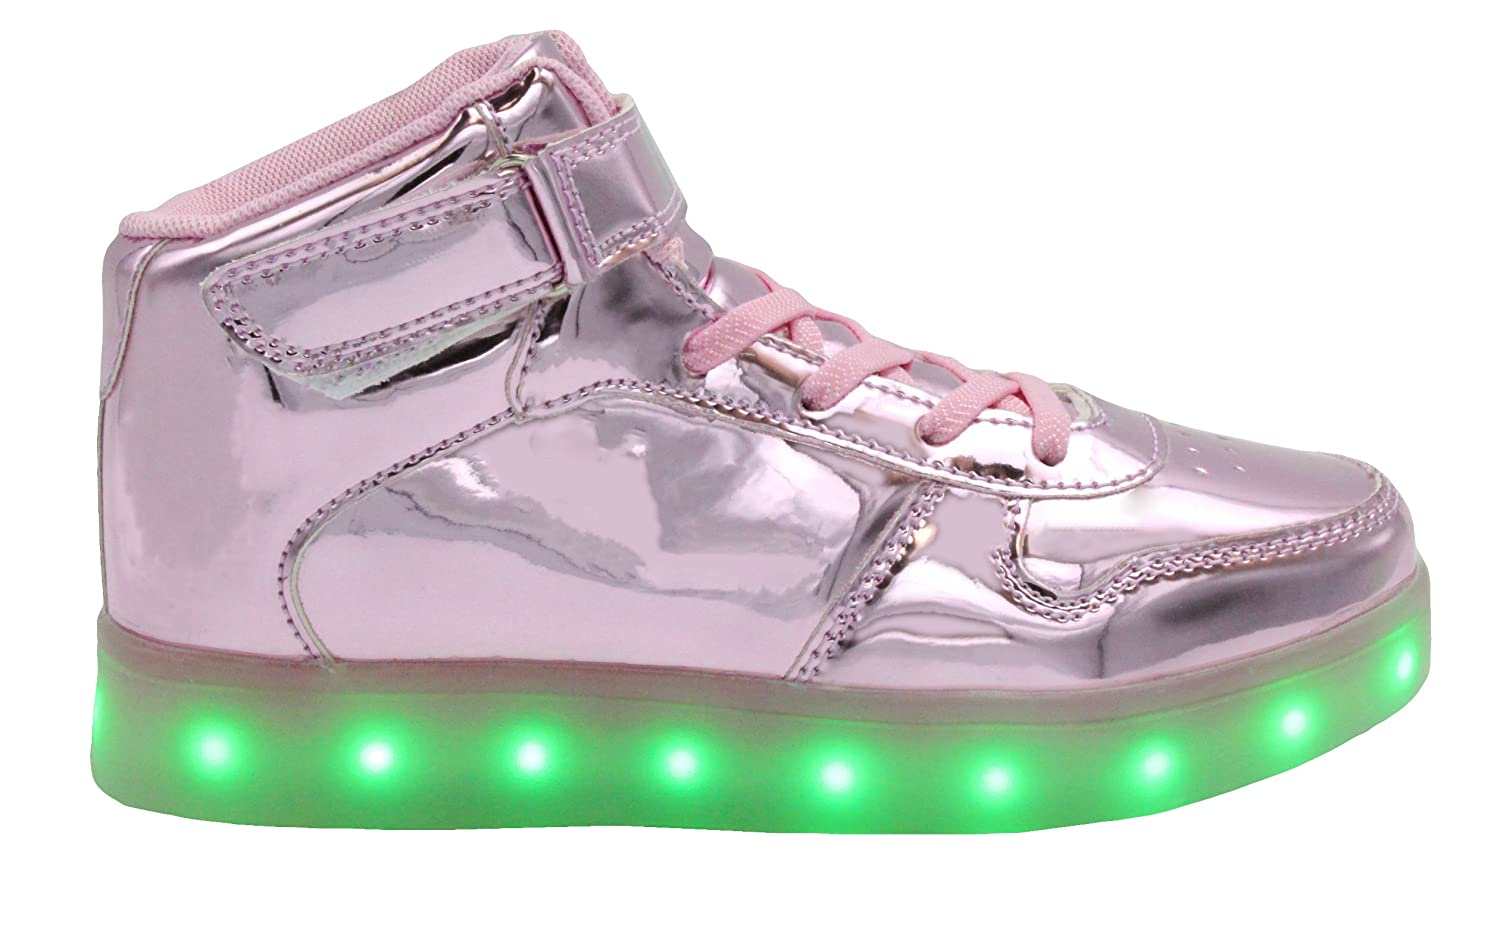 Transformania Toys Galaxy LED Shoes Light Up USB Charging High Top Lace & Strap Sneakers B072KL1YM9 8 US Women / 39 E.U.|Pink